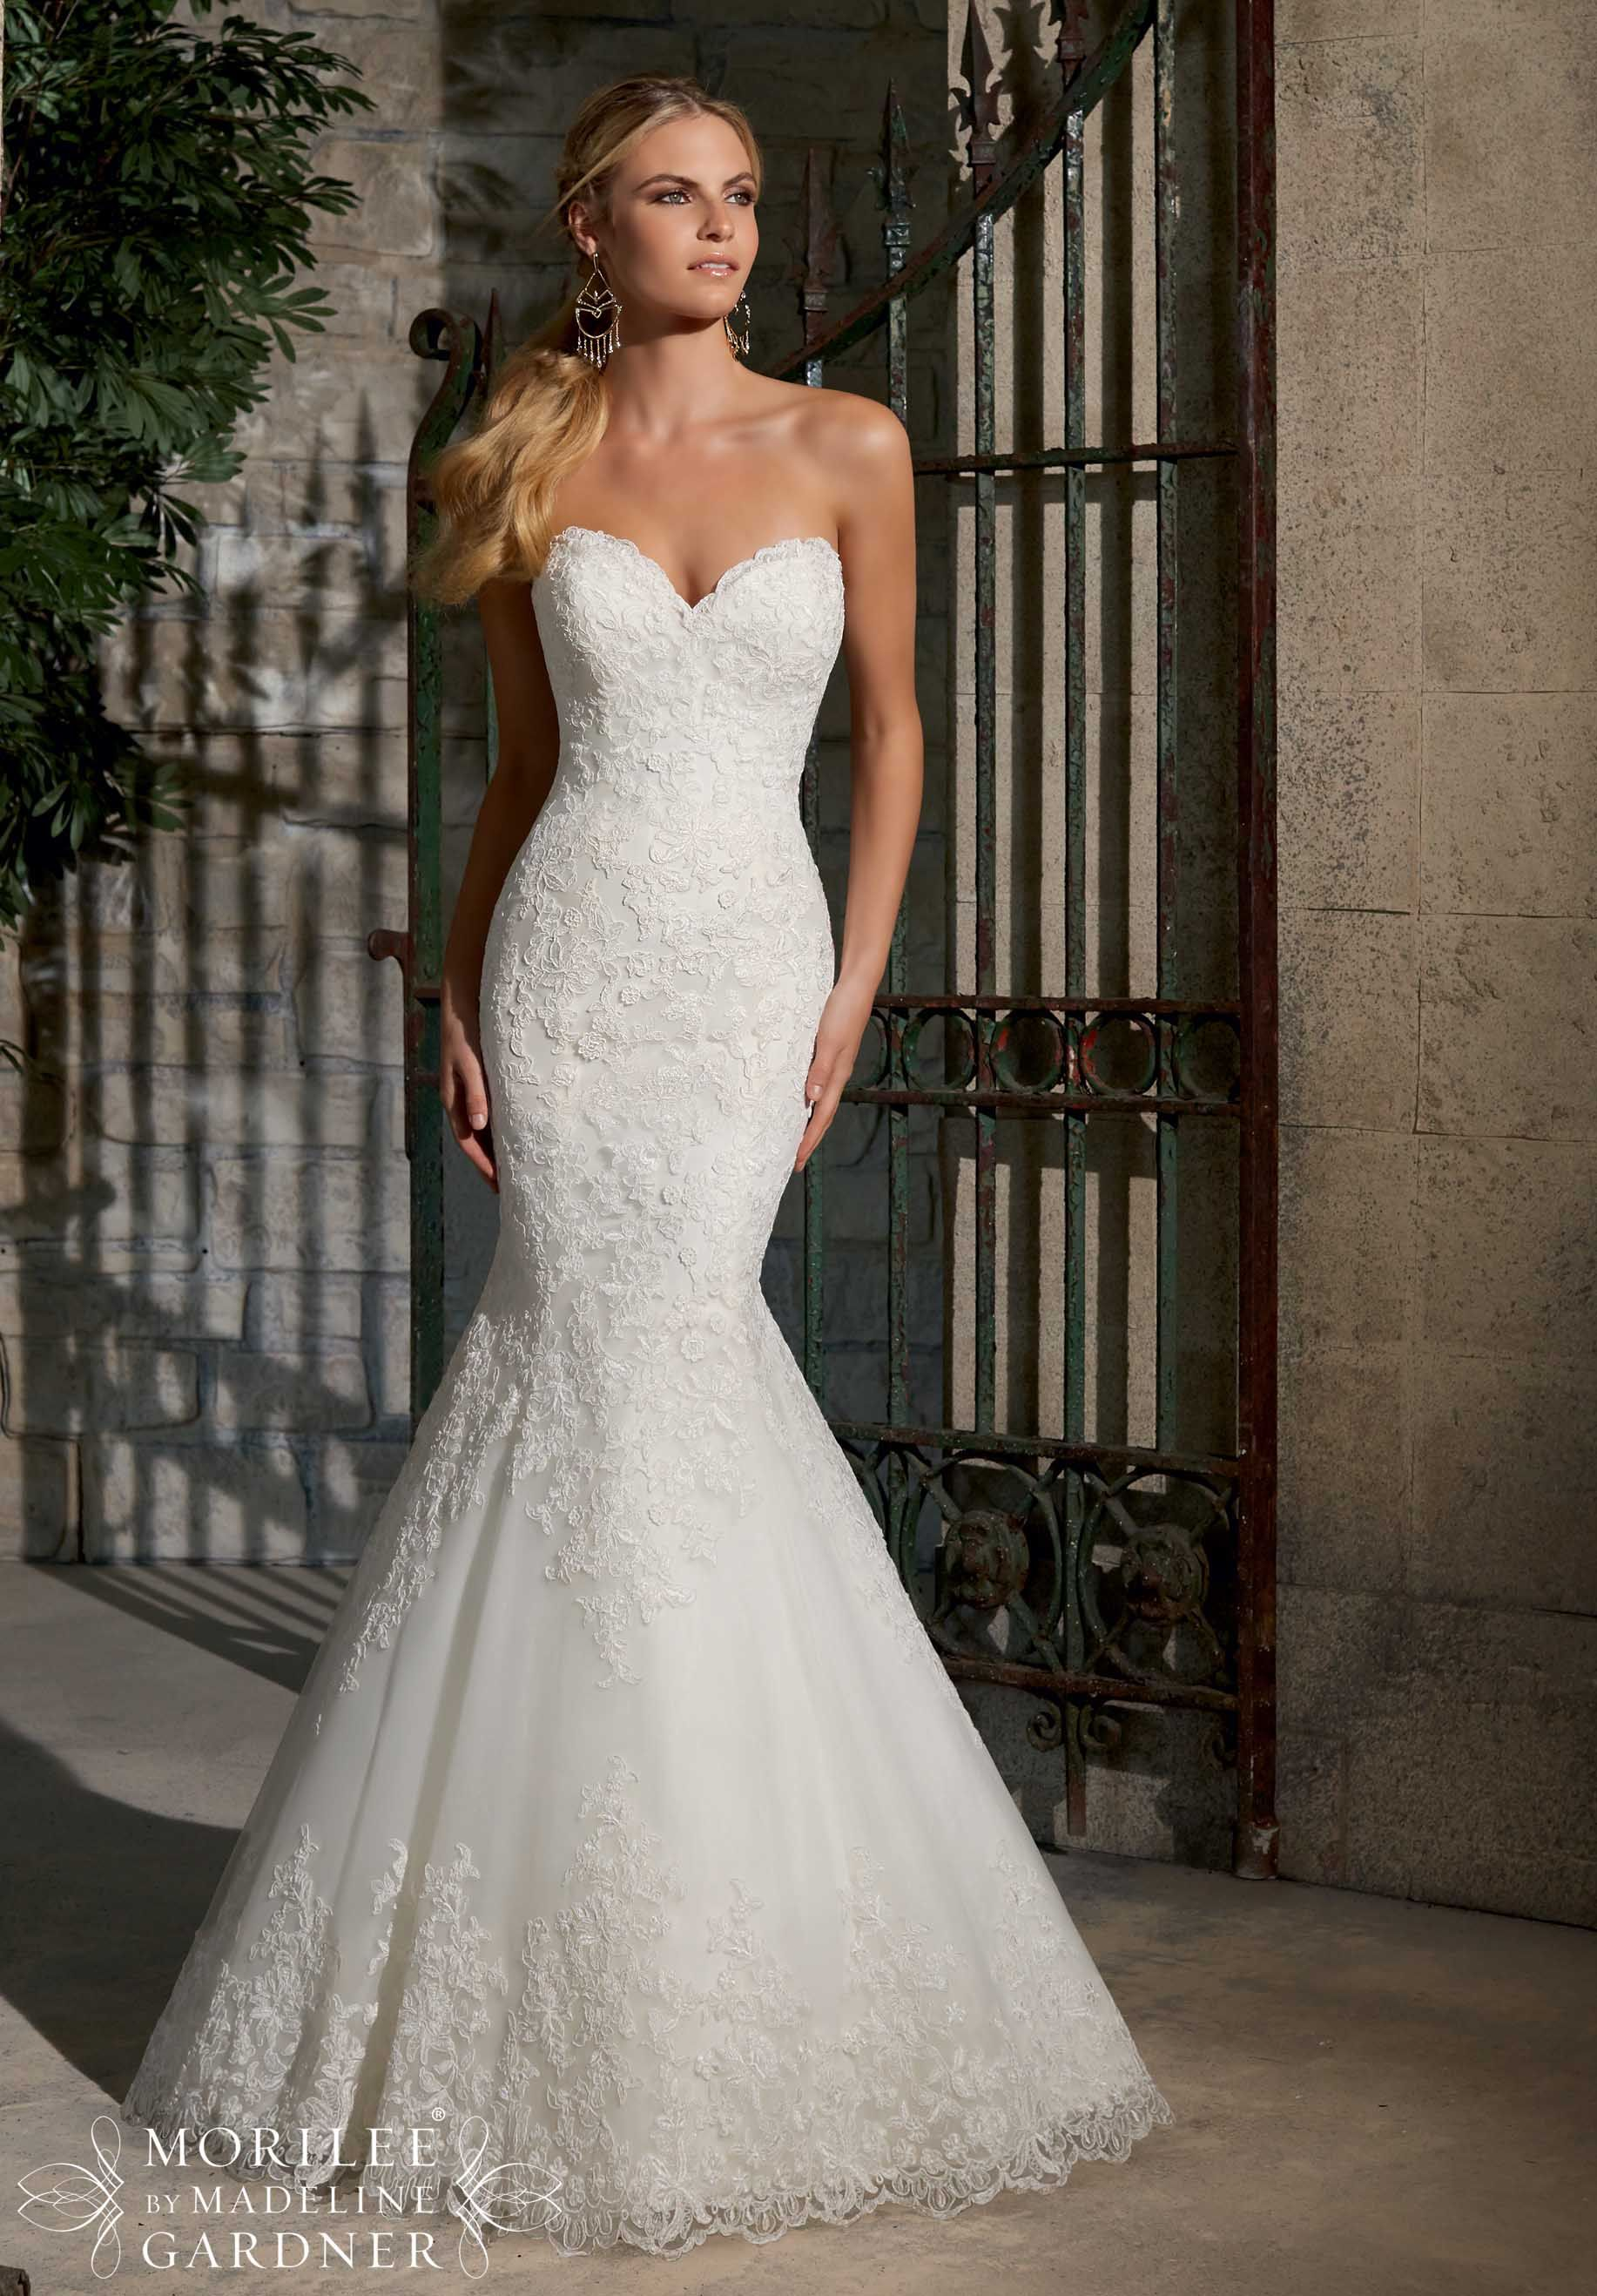 Trending Wedding Gowns by Morilee featuring Elegant Alencon Lace on Net with Wide Hemline Available in